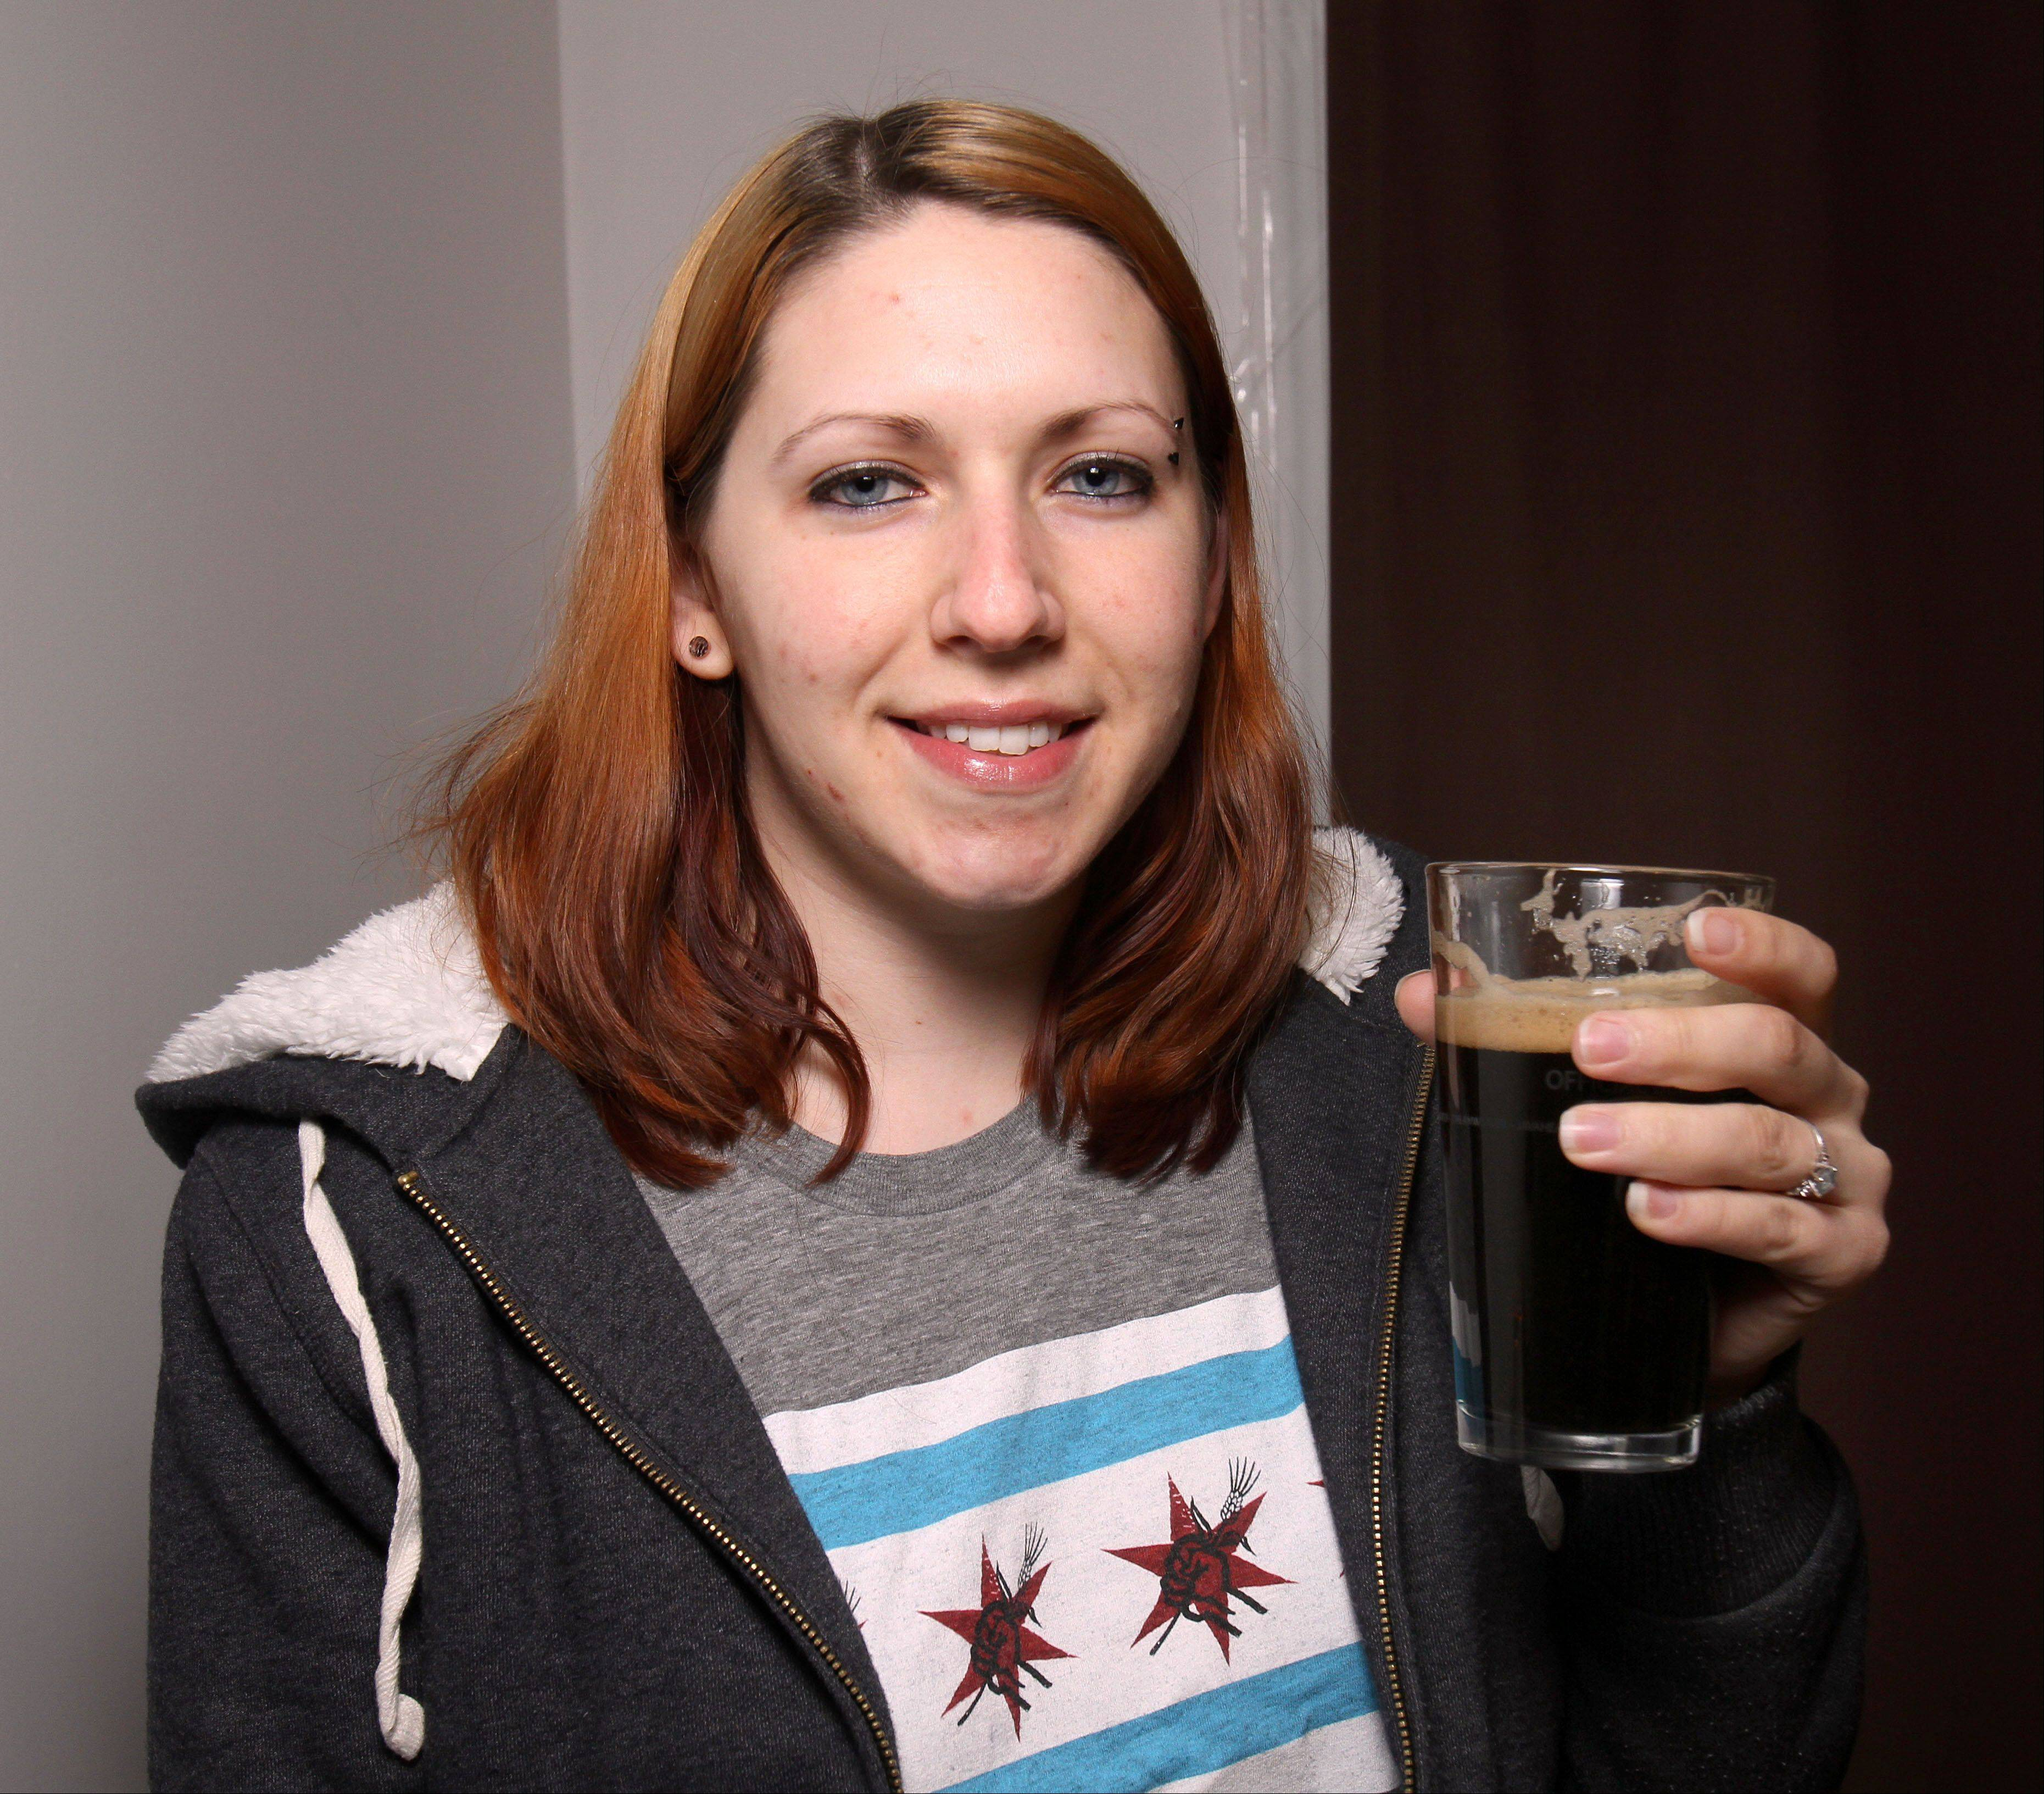 Valerie Delligatti of Round Lake Beach enjoys a pint of stout she brewed at home.